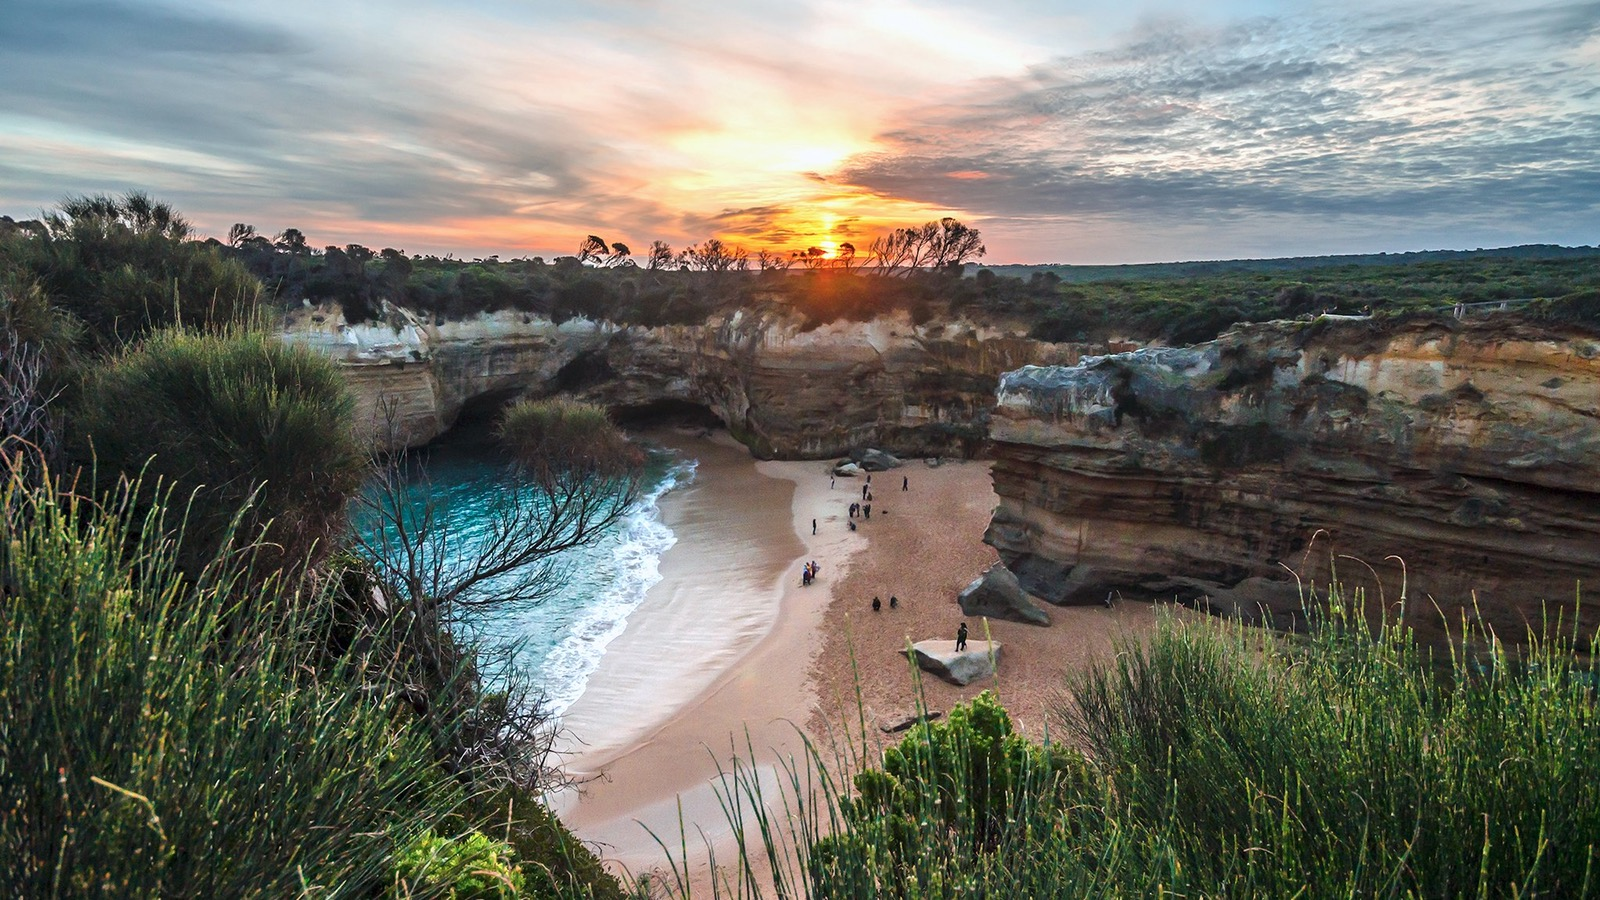 Sunset at Loch Ard Gorge on the Great Ocean Road